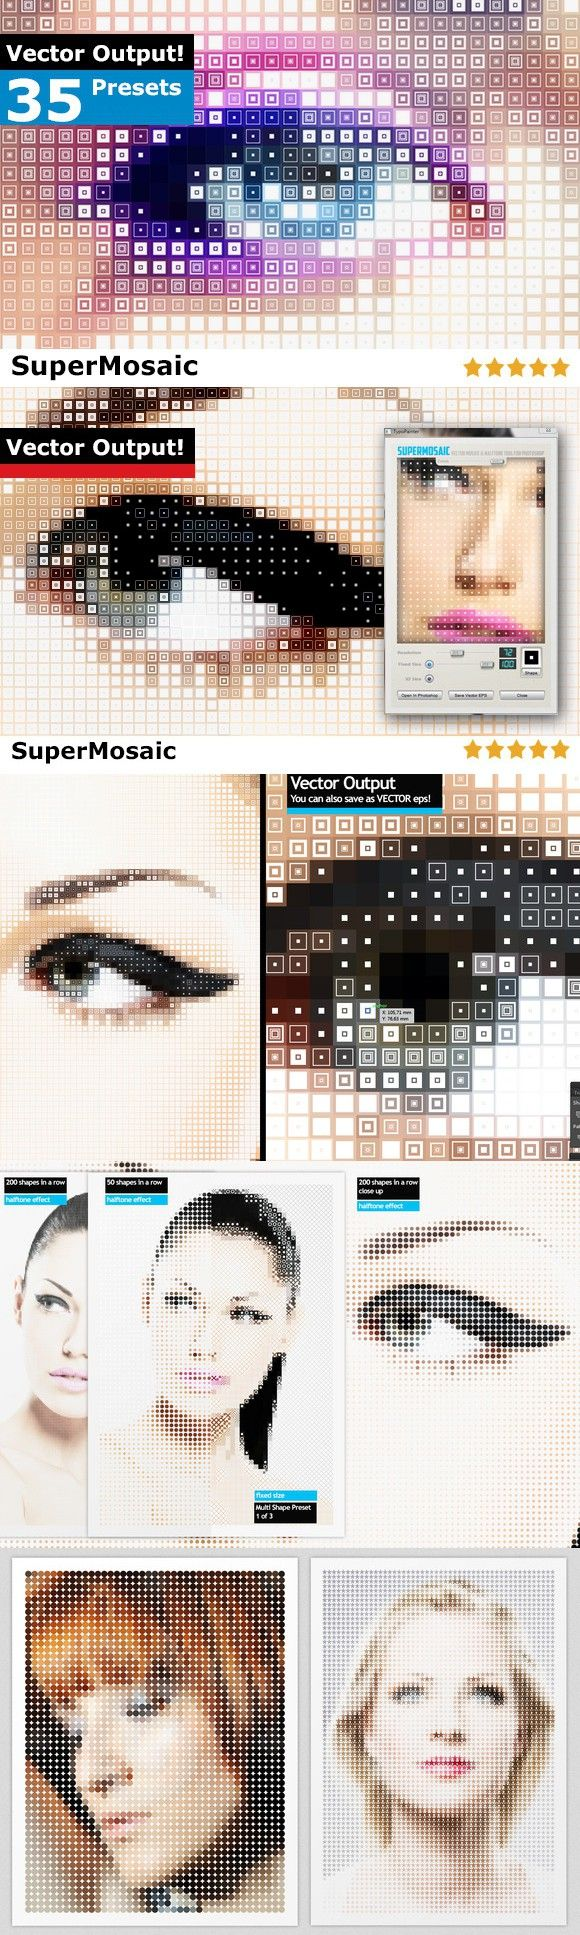 SuperMosaic. Actions. $20.00